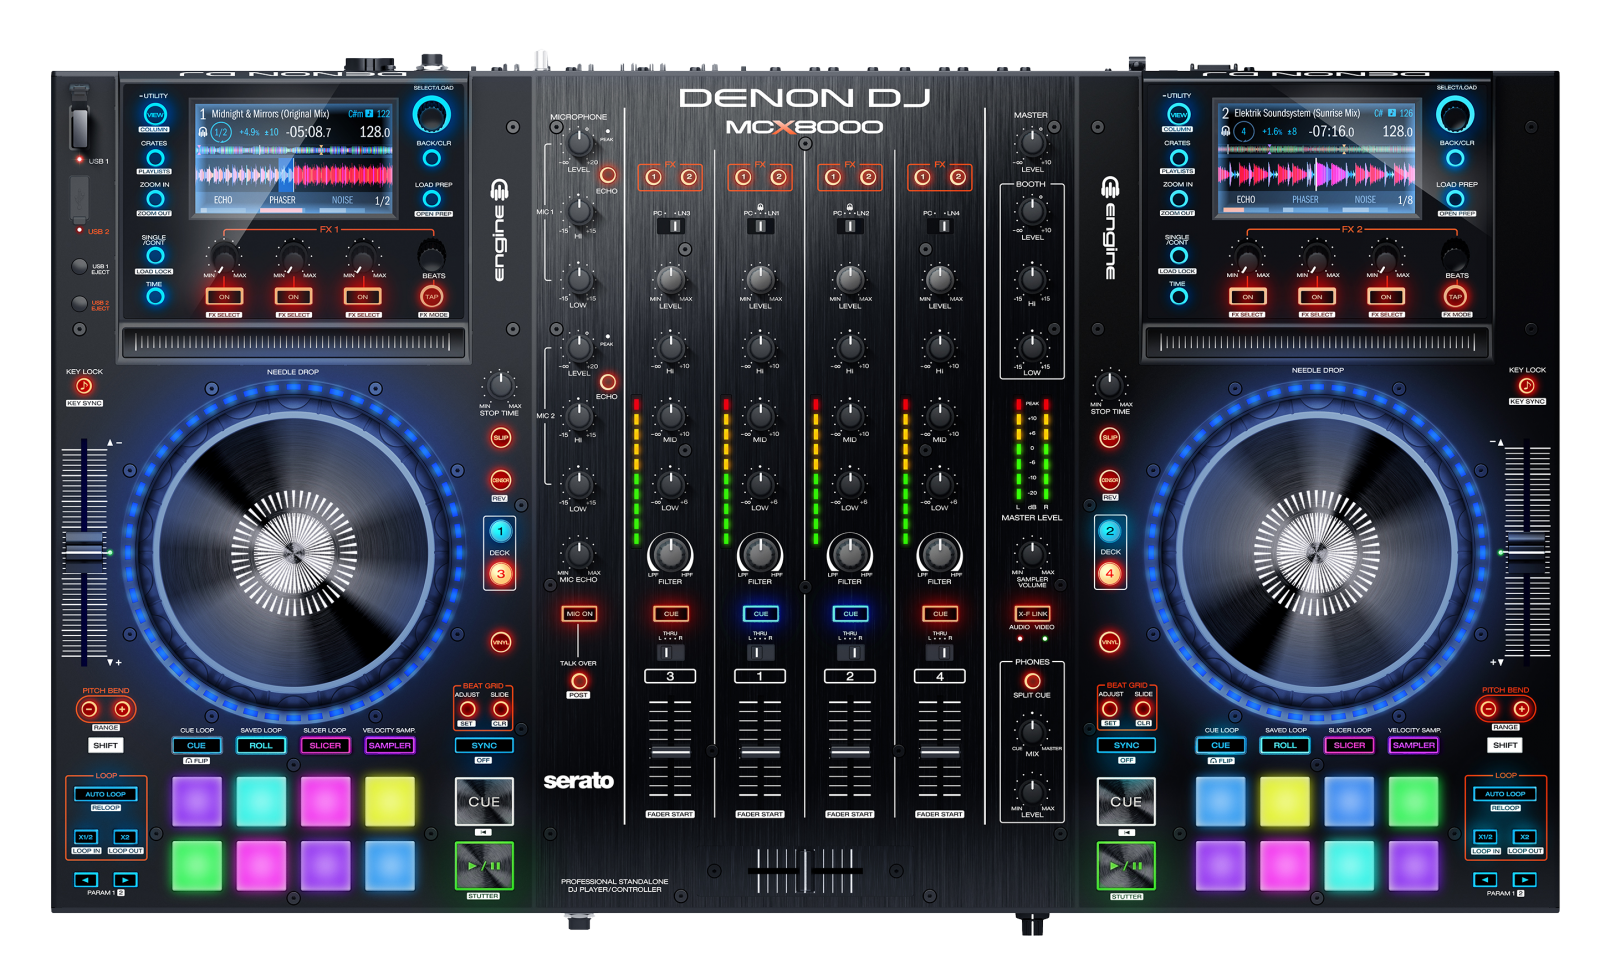 Denon Dj Mcx8000 Frequently Asked Questions Pro Comp Pc 8000 Wiring Diagram Denondj Main